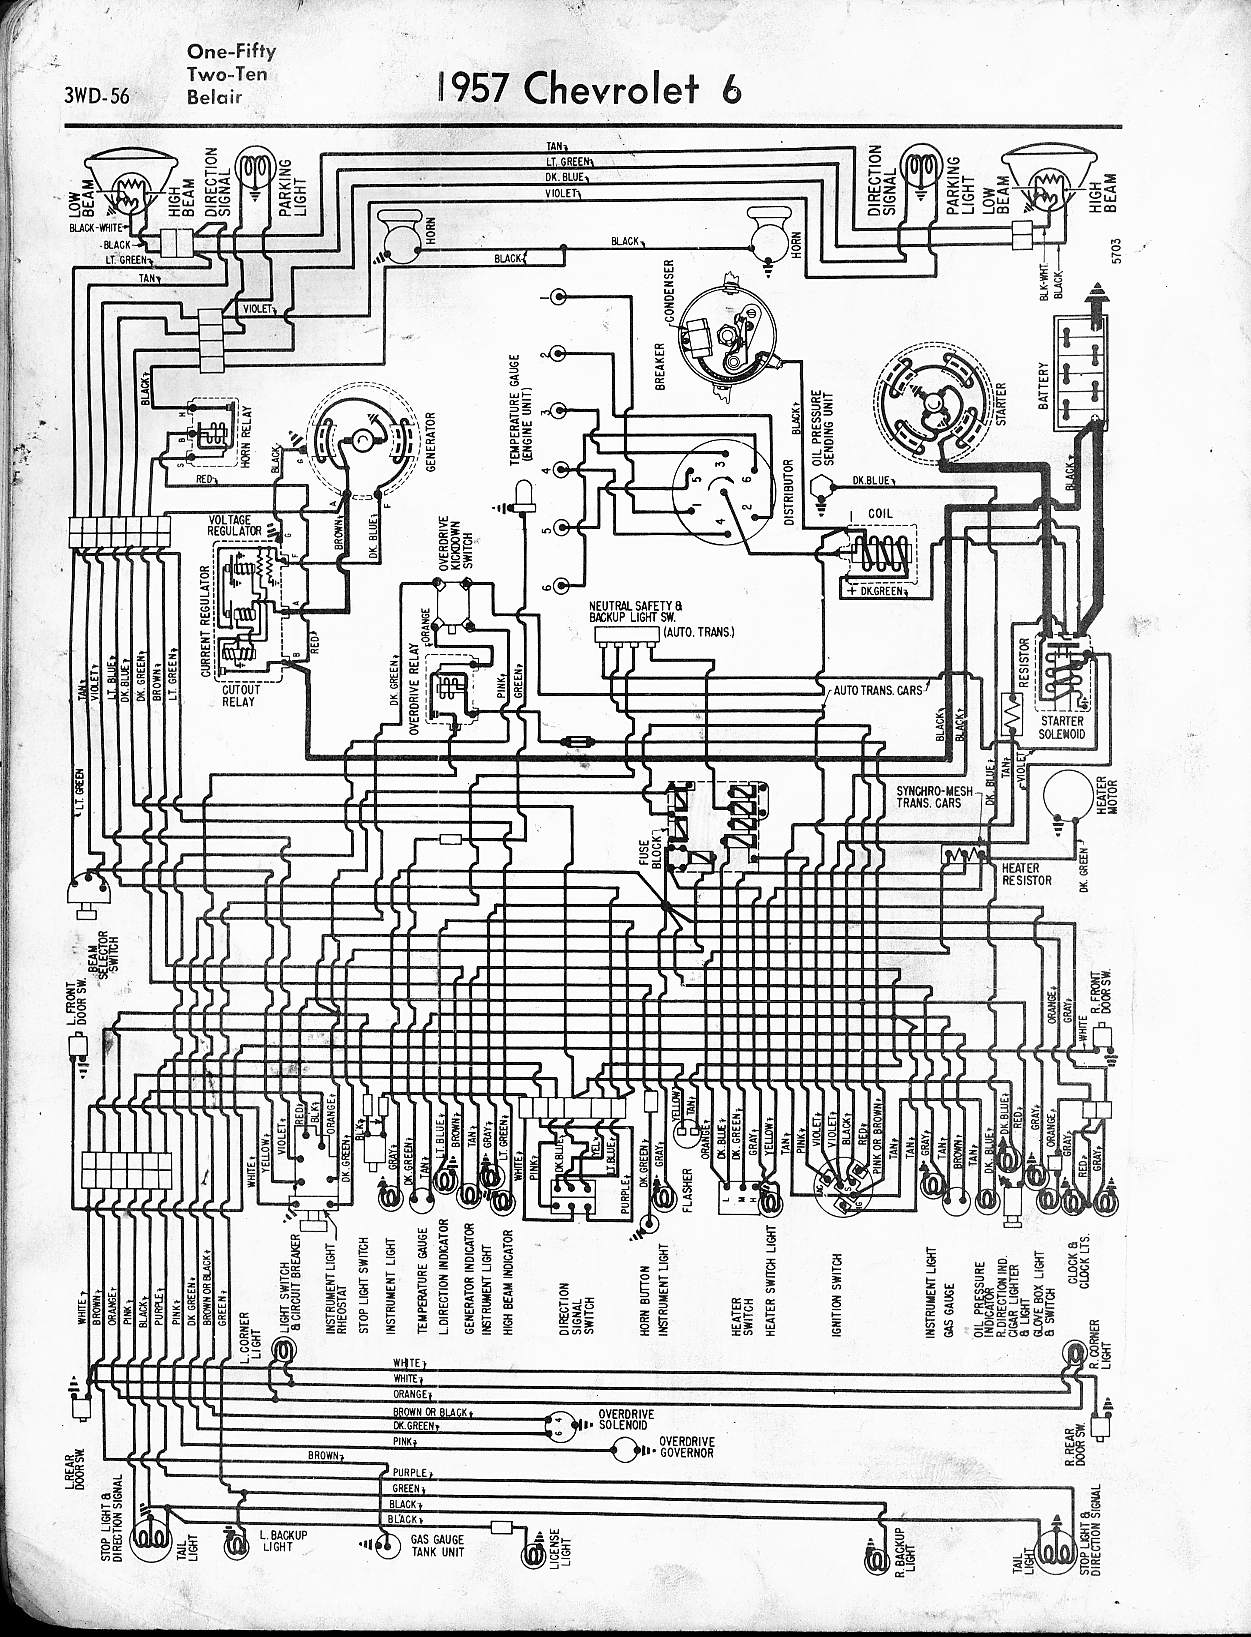 Tri Five Wiring Diagram Schemes 6 Way Switch Ford 1957 Chevy Bel Air Schematics Rh Caltech Ctp Com Symbols